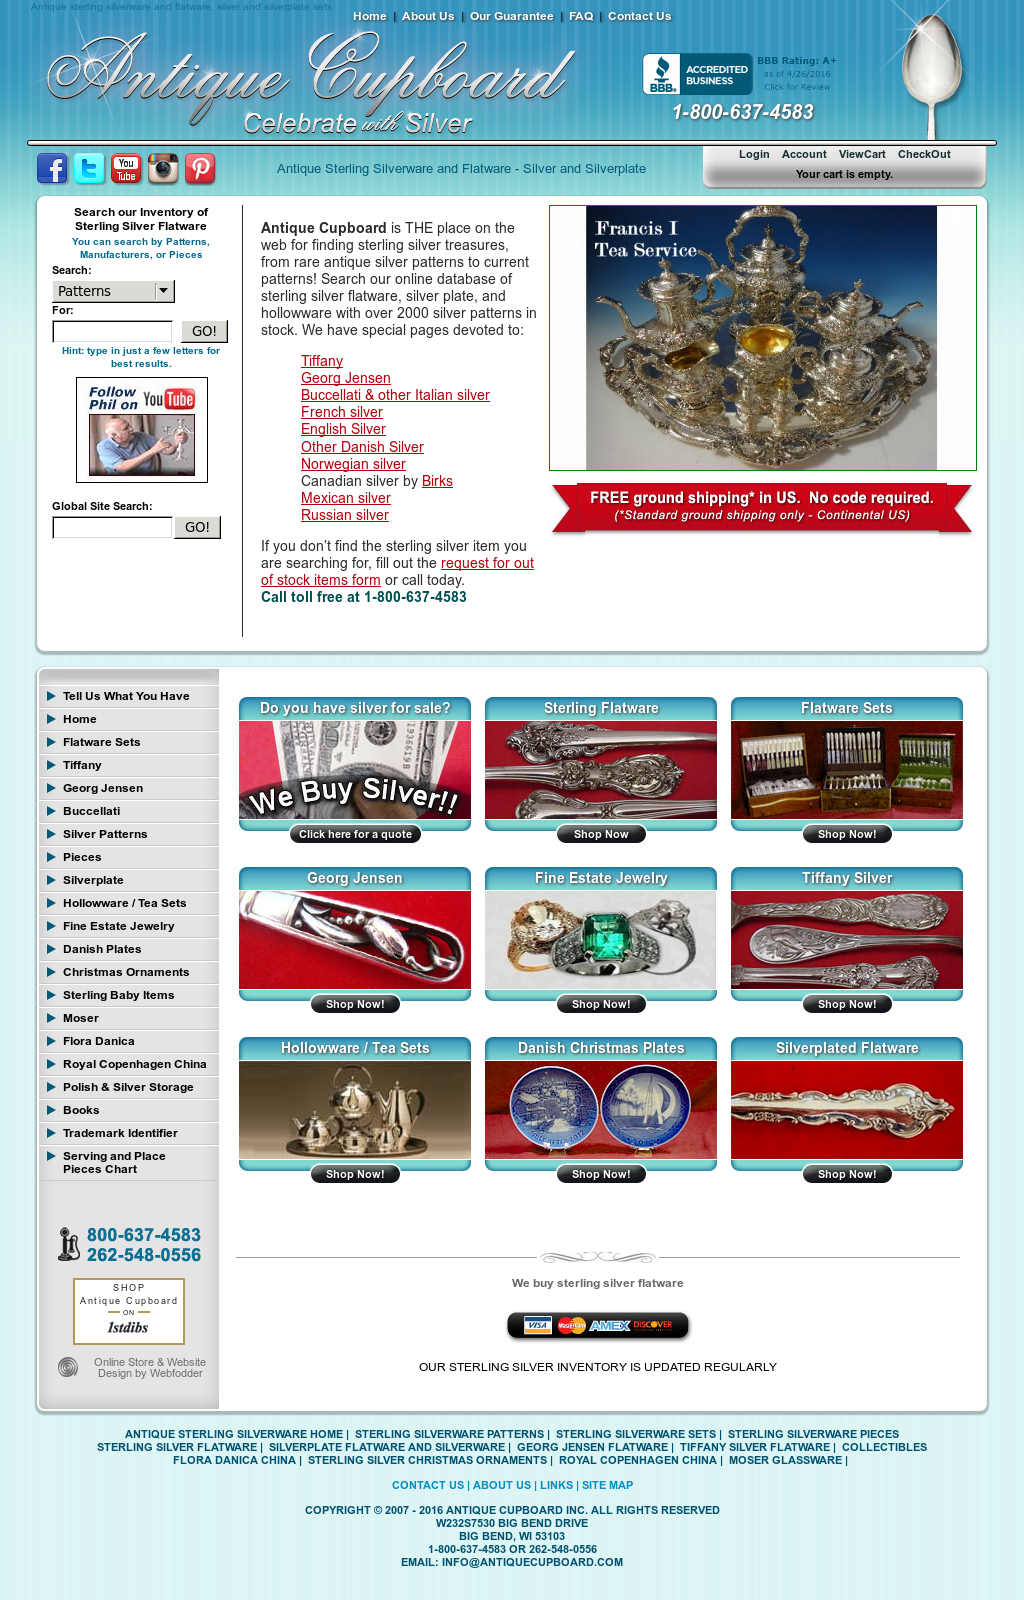 Antique Cupboard website history - Antique Cupboard Competitors, Revenue And Employees - Owler Company